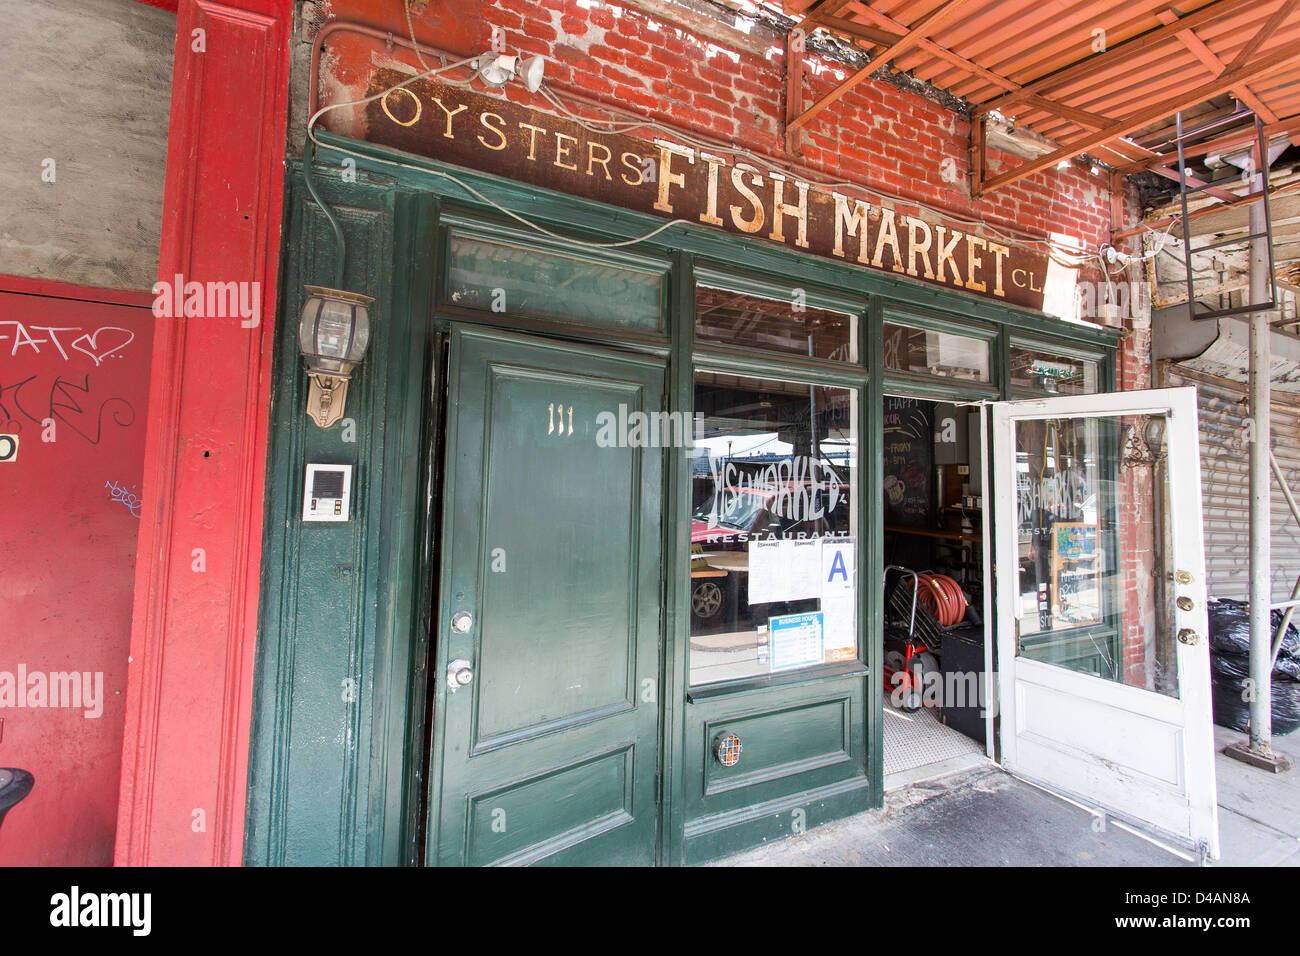 Store front door - Fish Market - South Street Seaport NYC & Store front door - Fish Market - South Street Seaport NYC Stock ...